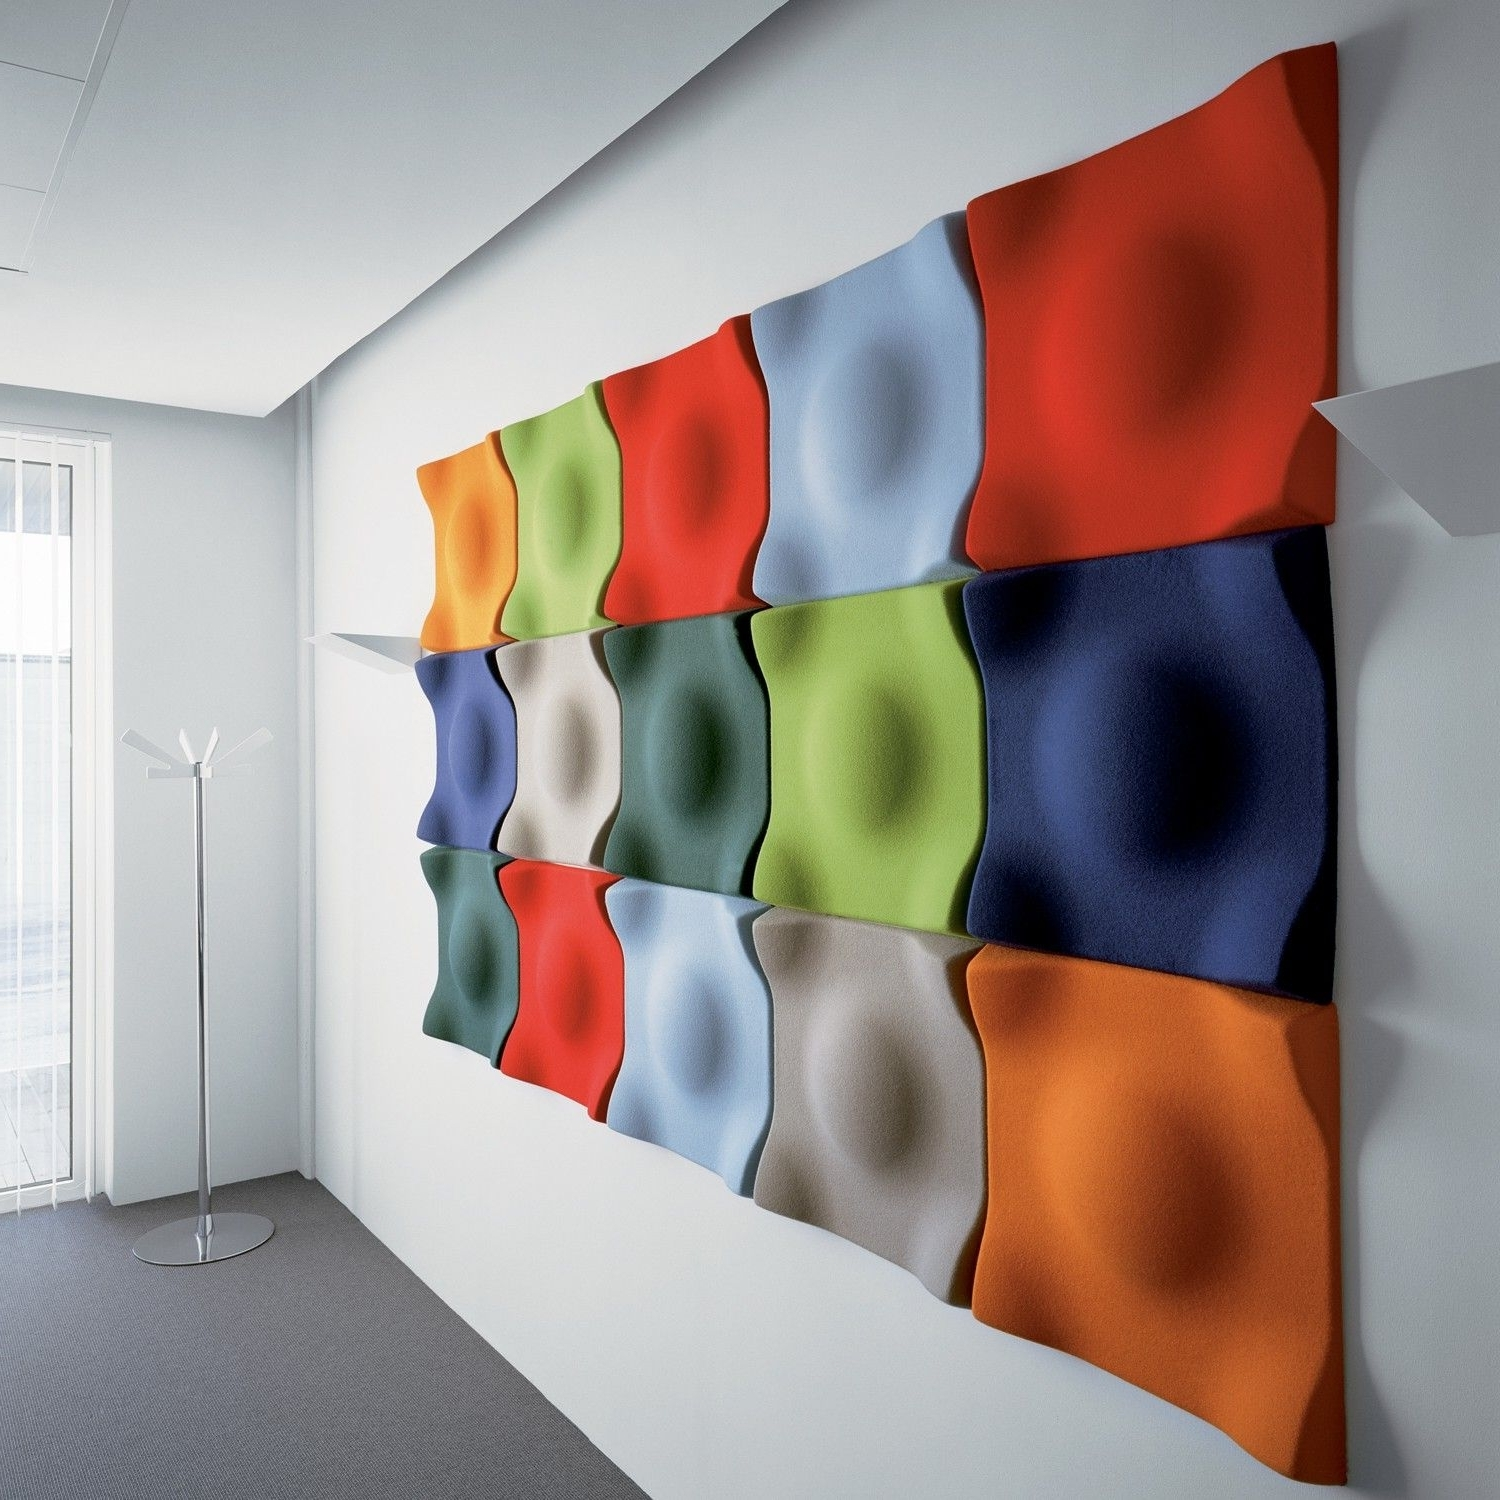 Foam Fabric Wall Art Intended For Current Wall Decor : Acoustic Cladding Panels Melamine Acoustic Foam (View 6 of 15)